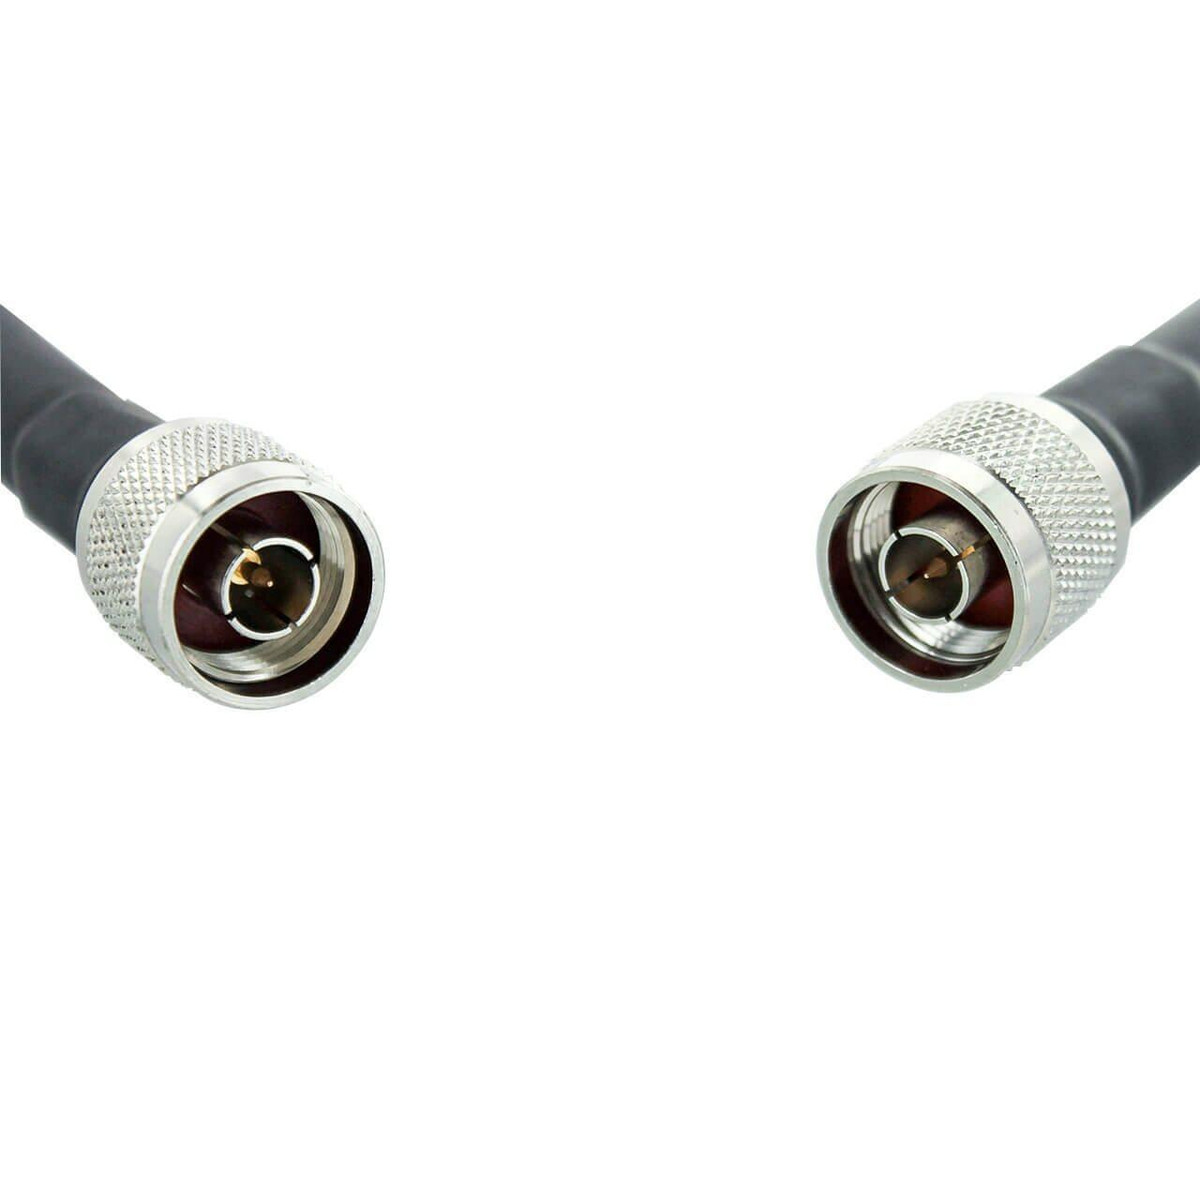 Bolton Tech Bolton Technical N-Male to N-Male Bolton400 Ultra Low-Loss Coax Cable or 60 ft Cable